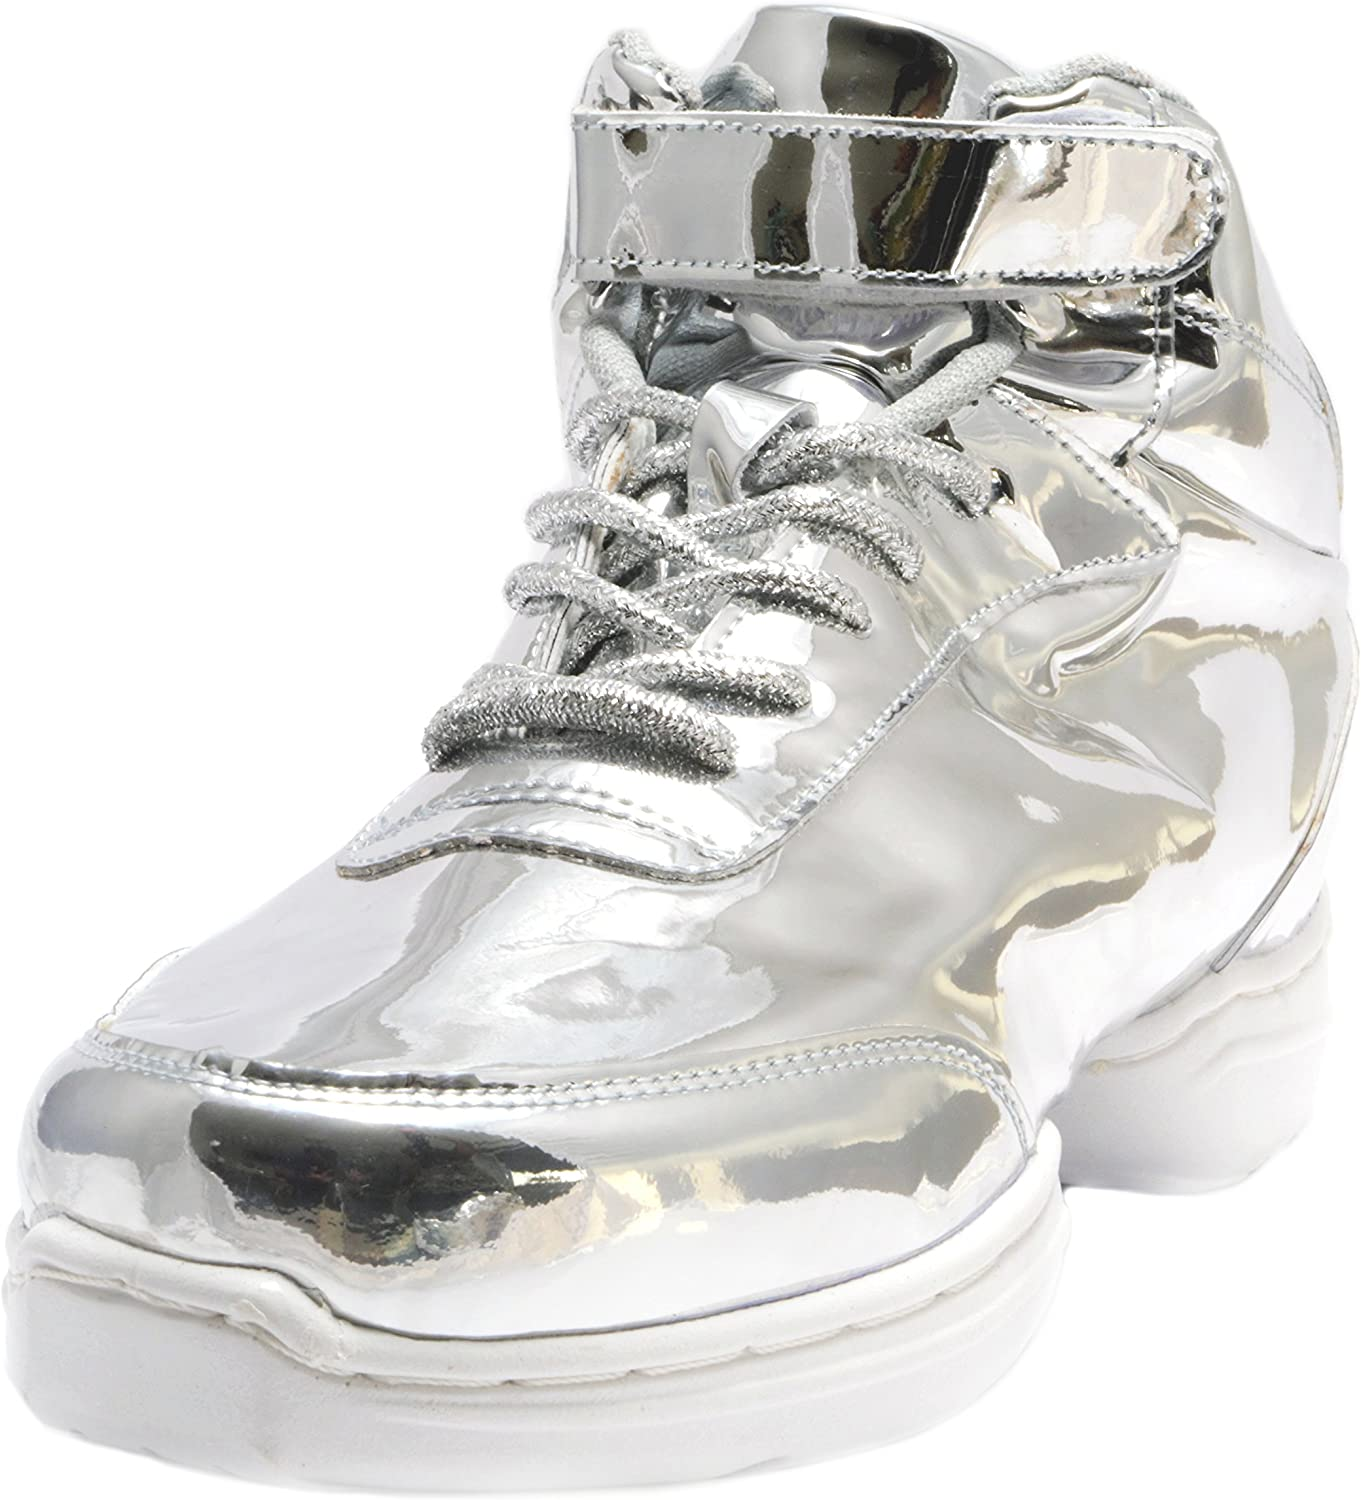 Nene's Collection Silver Women's Dance Fitness Ankle High Top Sneakers Nene's shoes